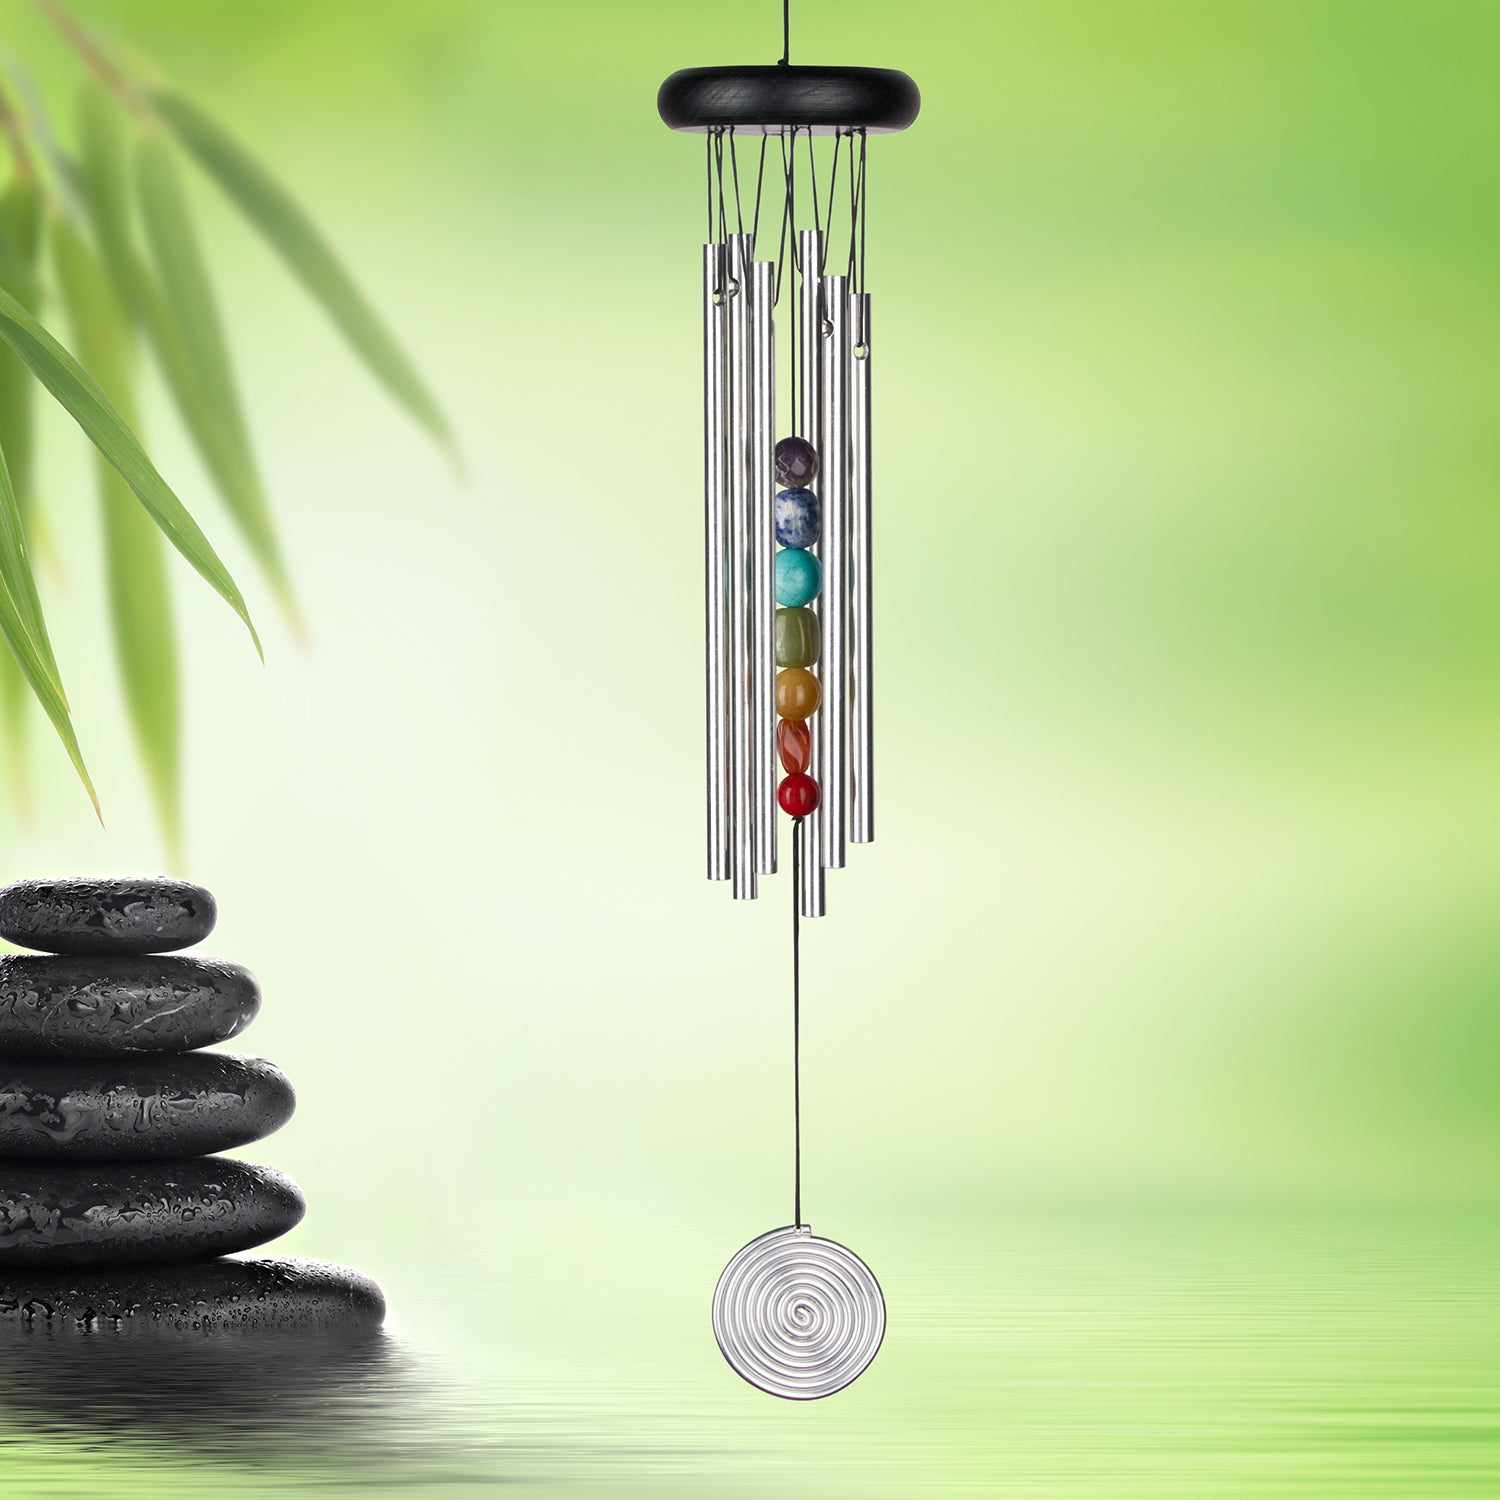 Chakra Chime - Seven Stones, Silver lifestyle image